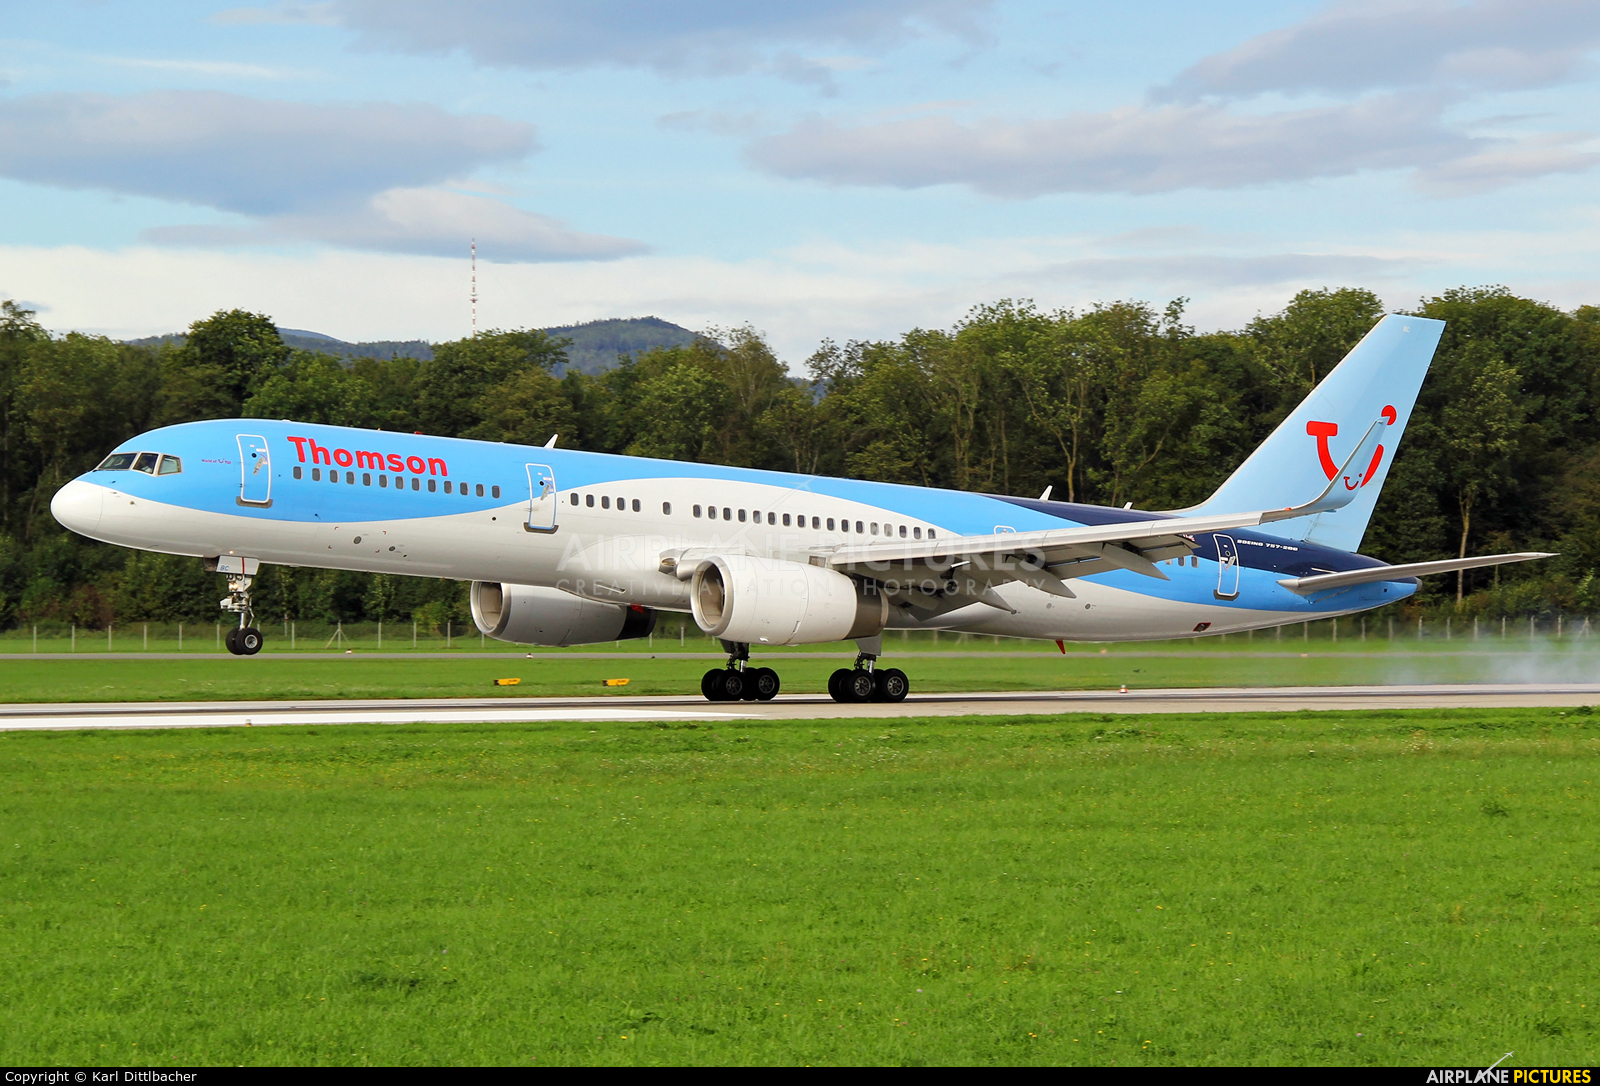 Thomson/Thomsonfly G-OOBC aircraft at Salzburg